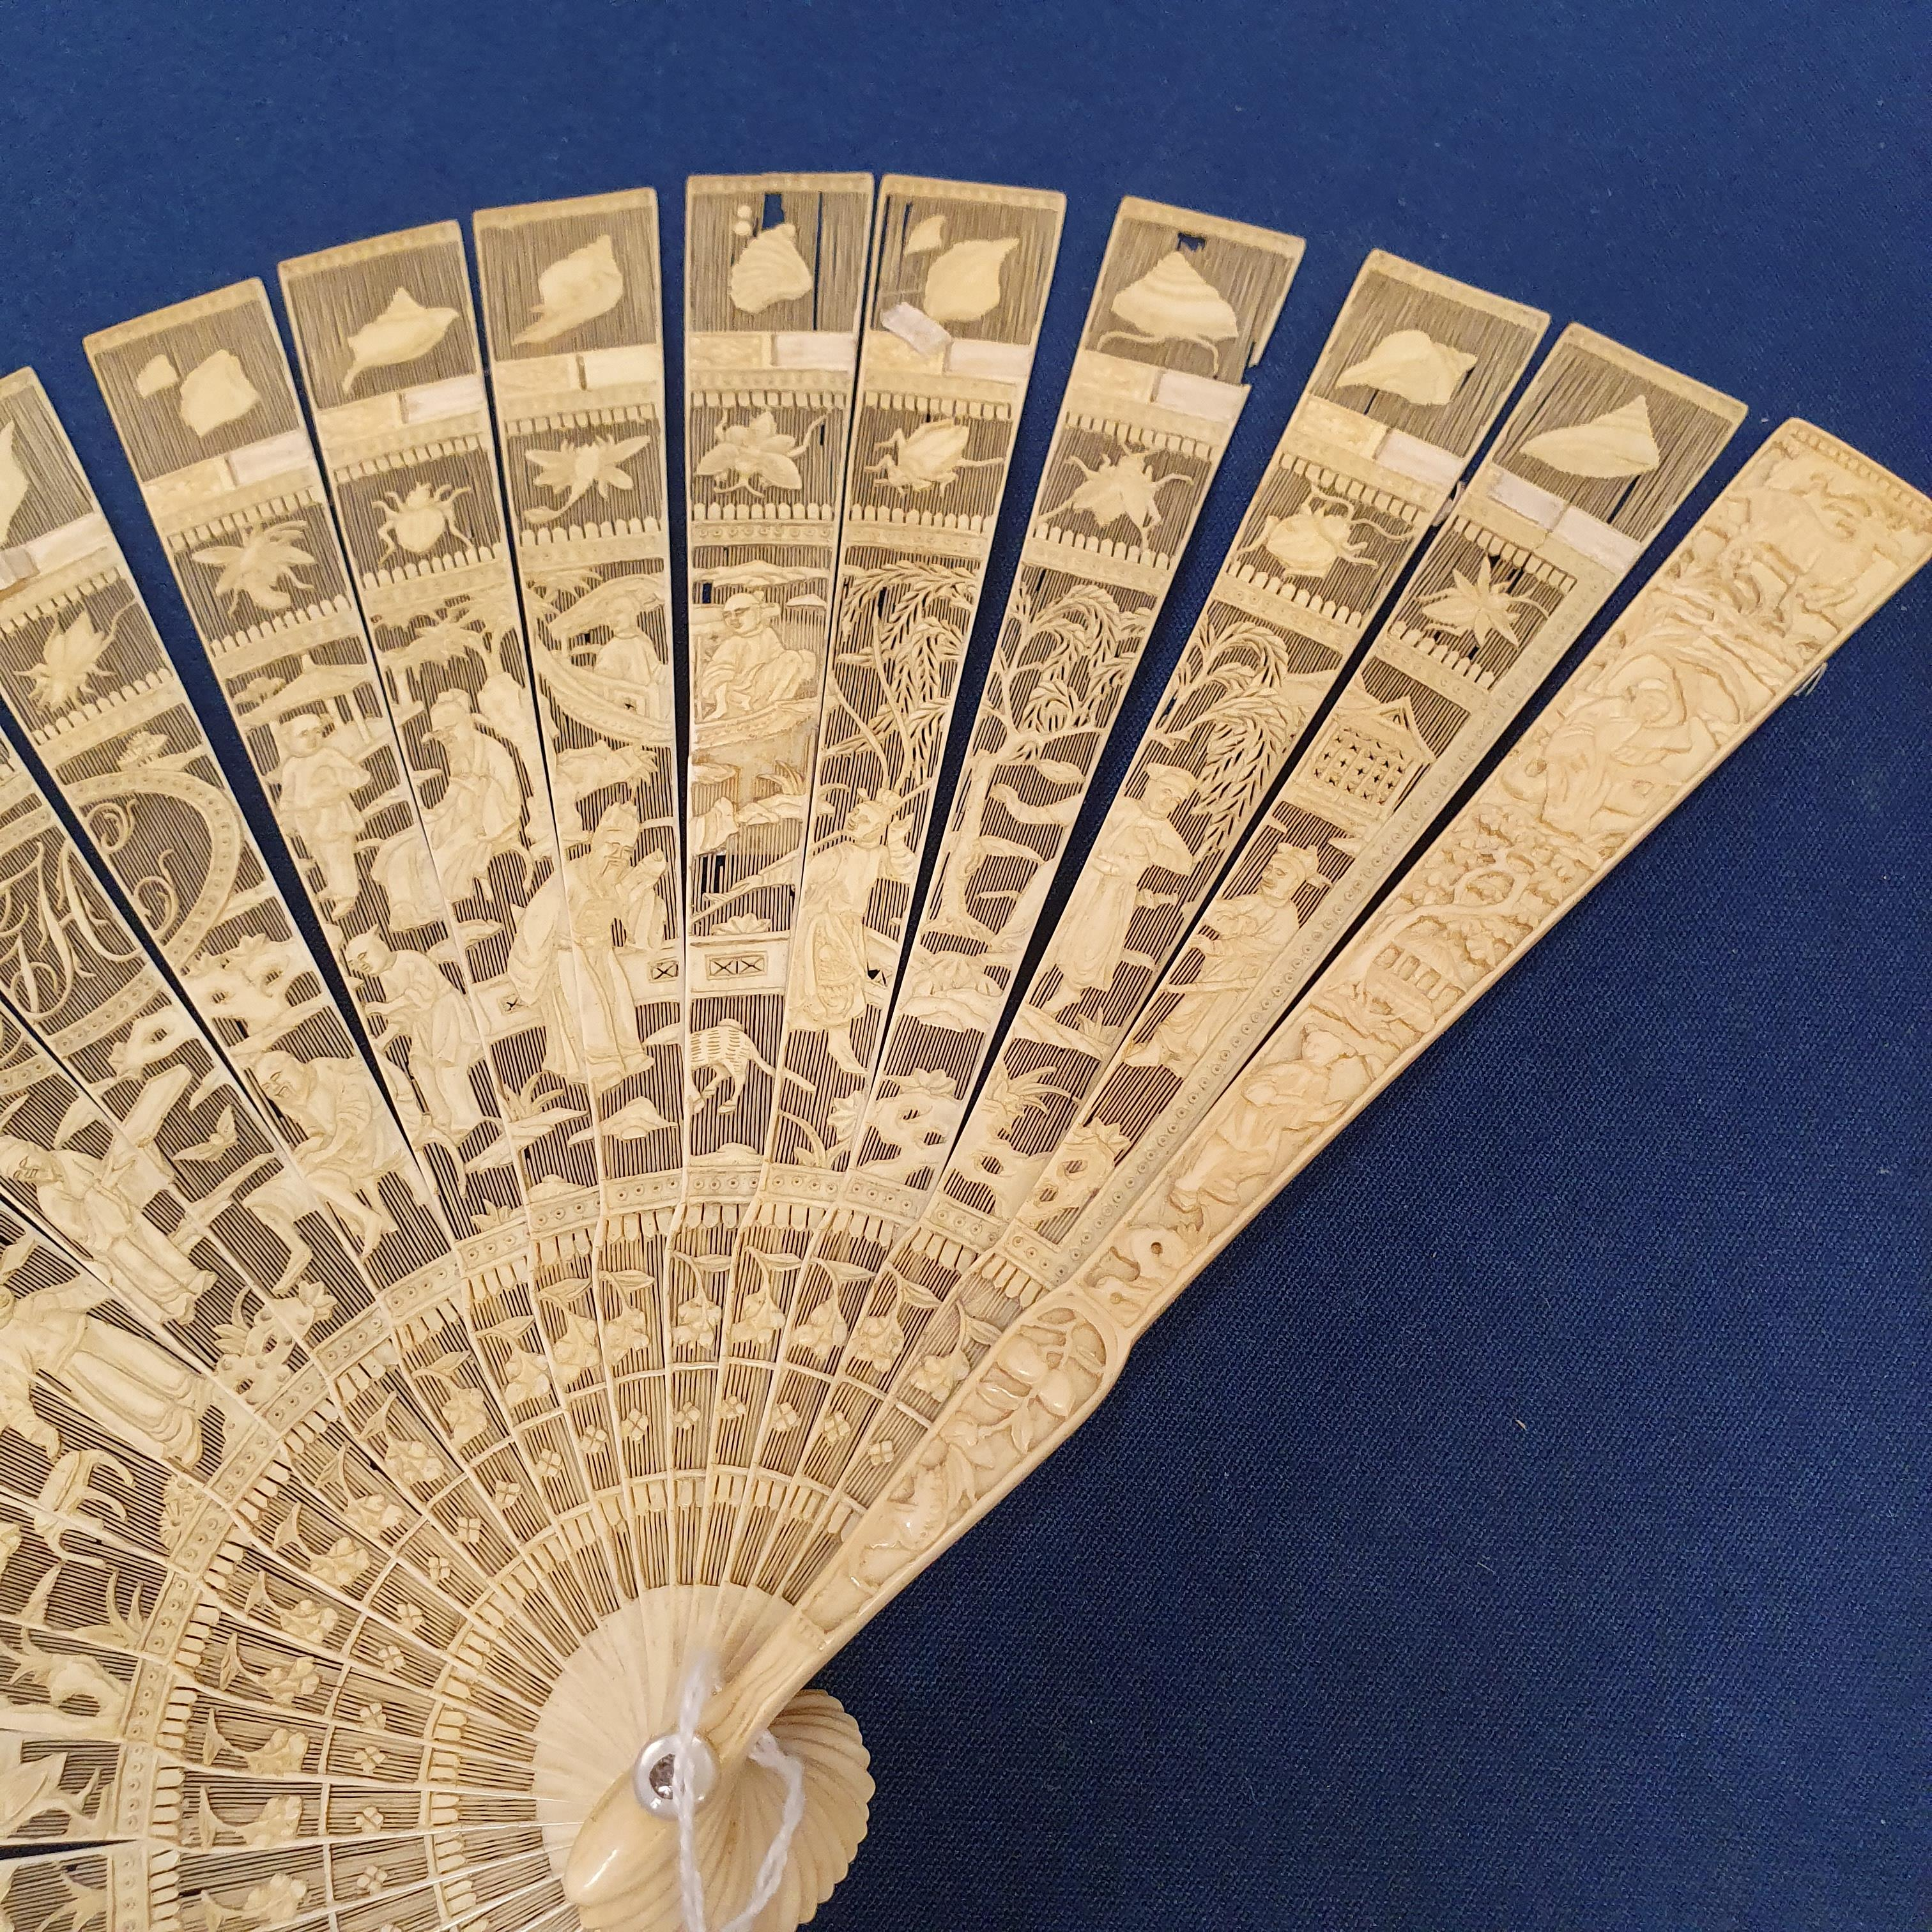 A Chinese ivory brisee fan, two others, and a similar fan with silk embroidered decoration, in a - Image 9 of 47